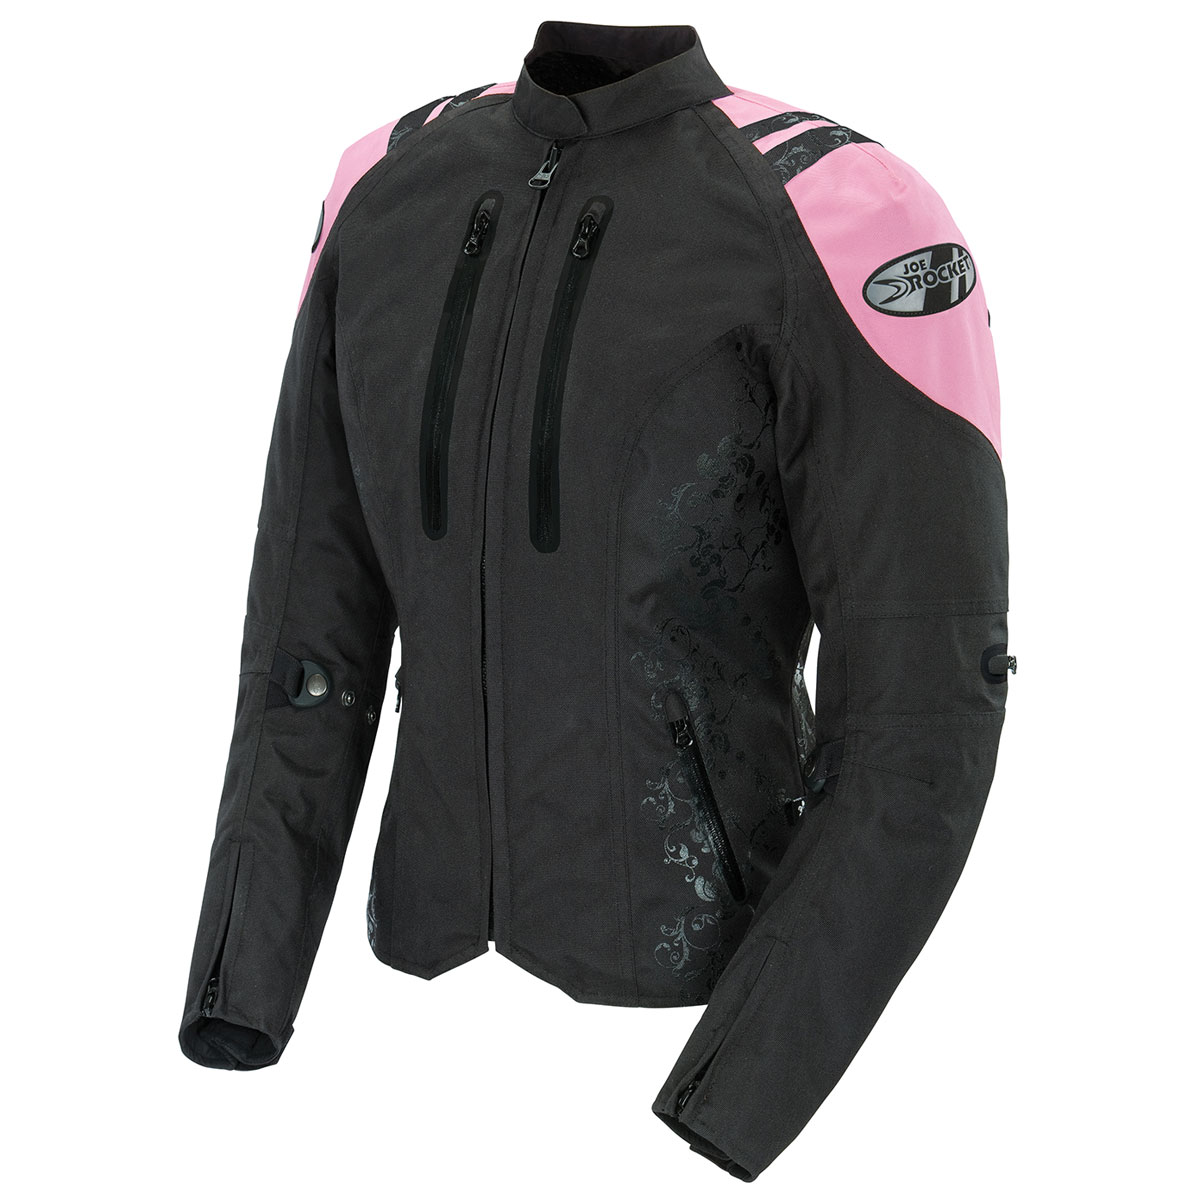 Joe Rocket Women's Atomic 4.0 Waterproof Pink/Black Jacket